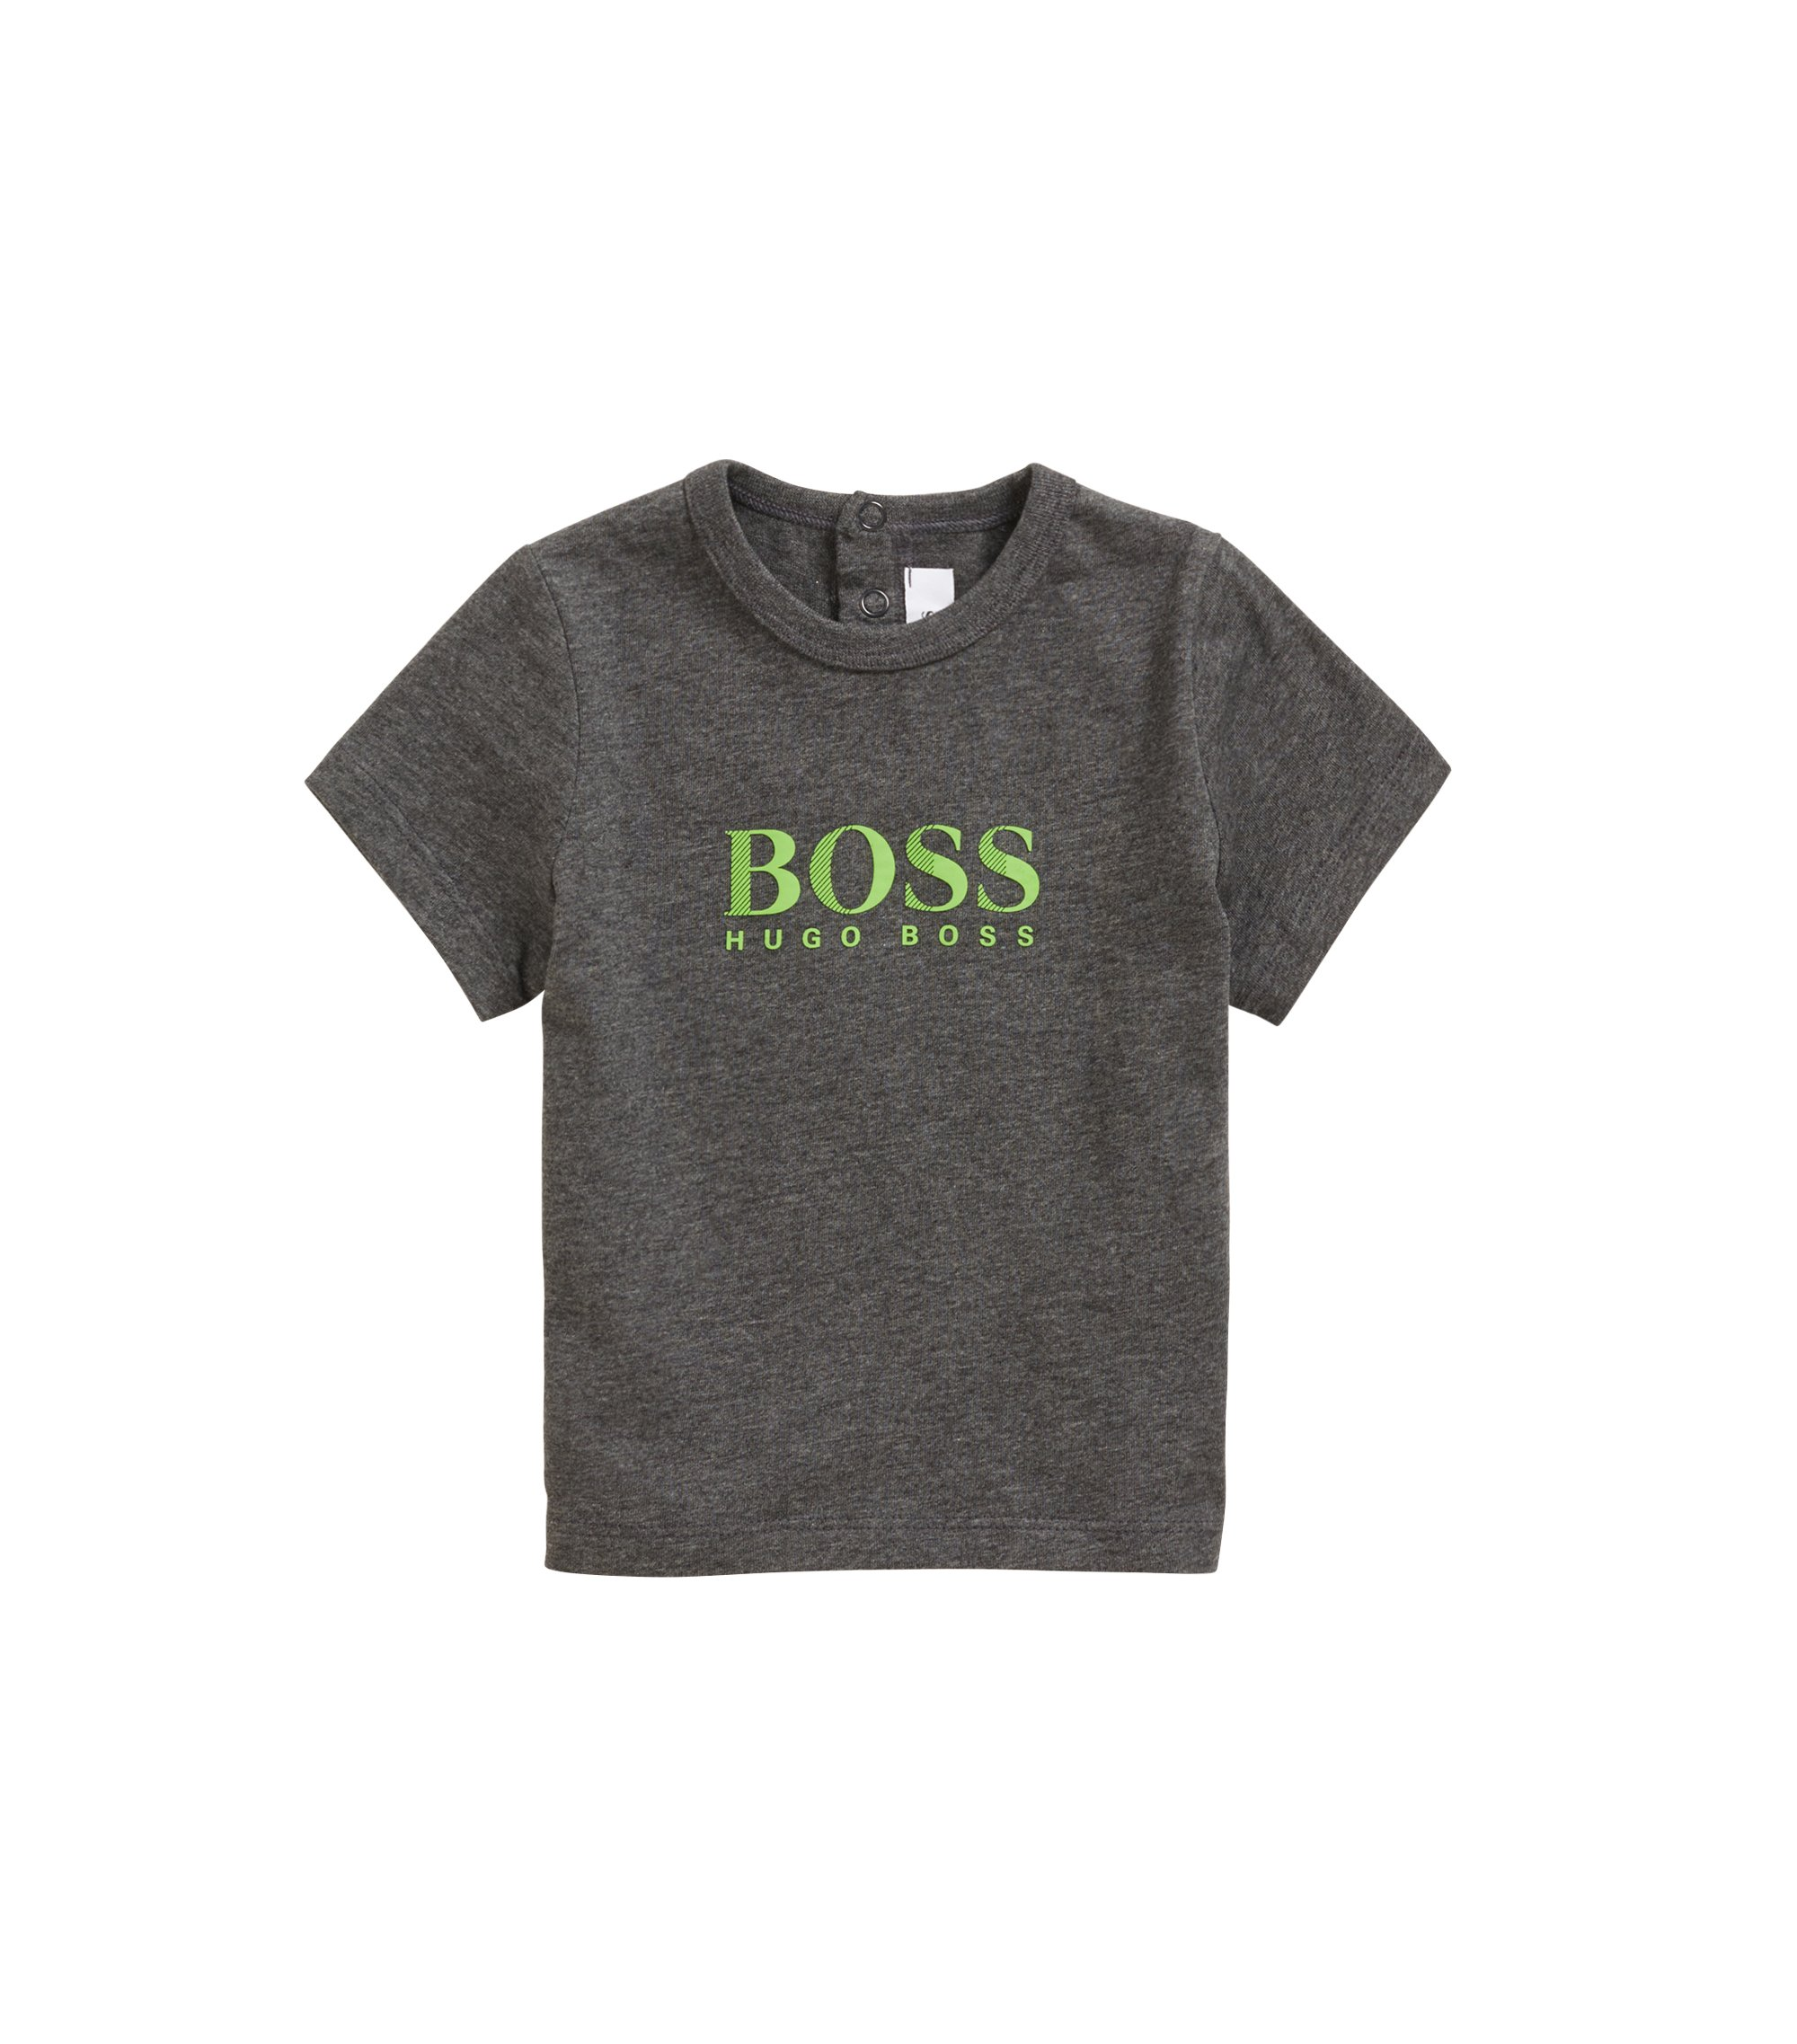 Kids' cotton jersey T-shirt with logo print, Anthracite